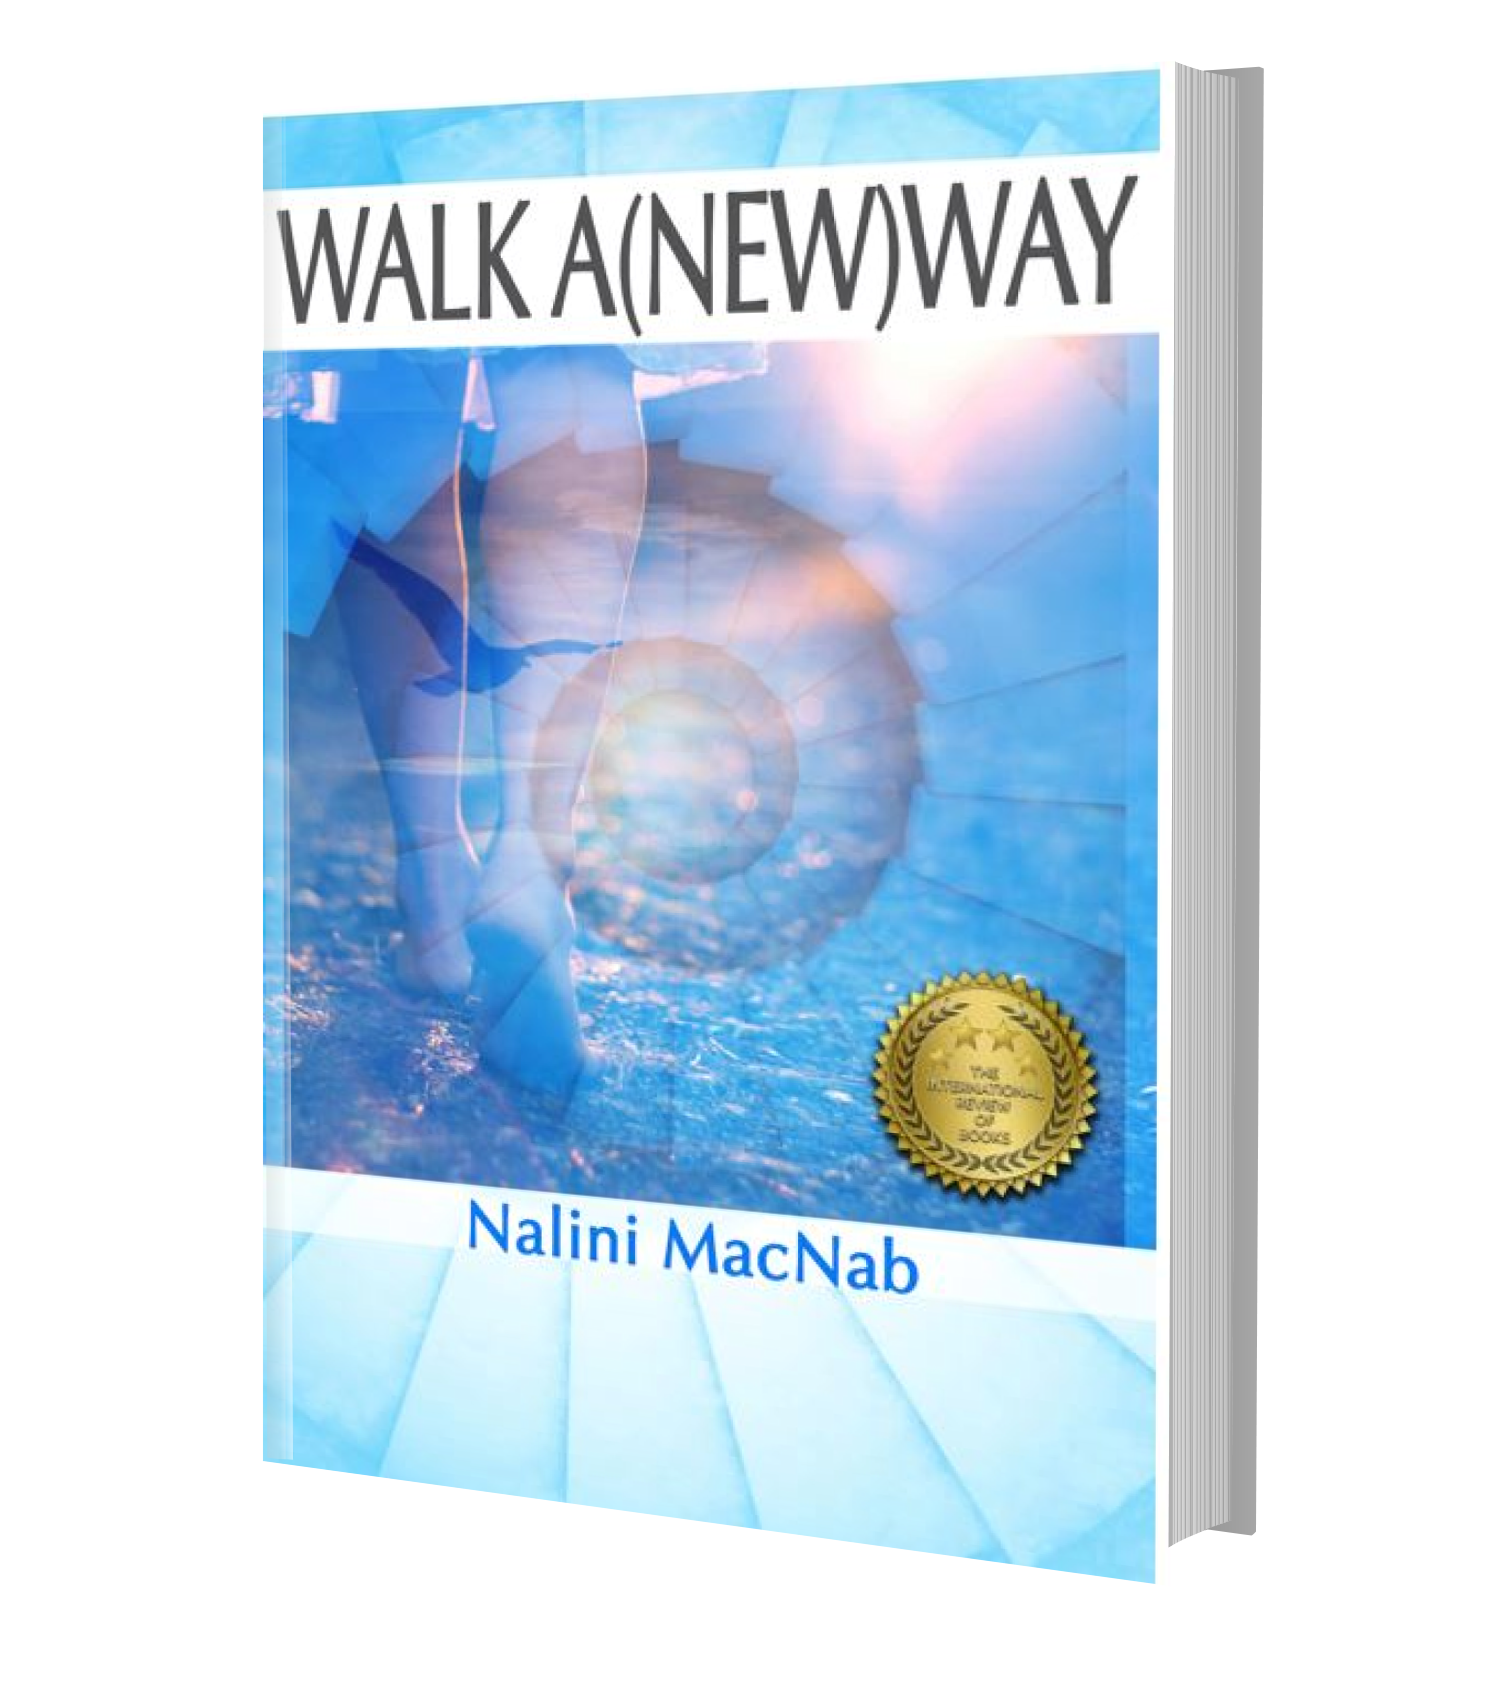 Are you interested in how I found my path? Read my story in my eBook, 'Walk a (New) Way'.